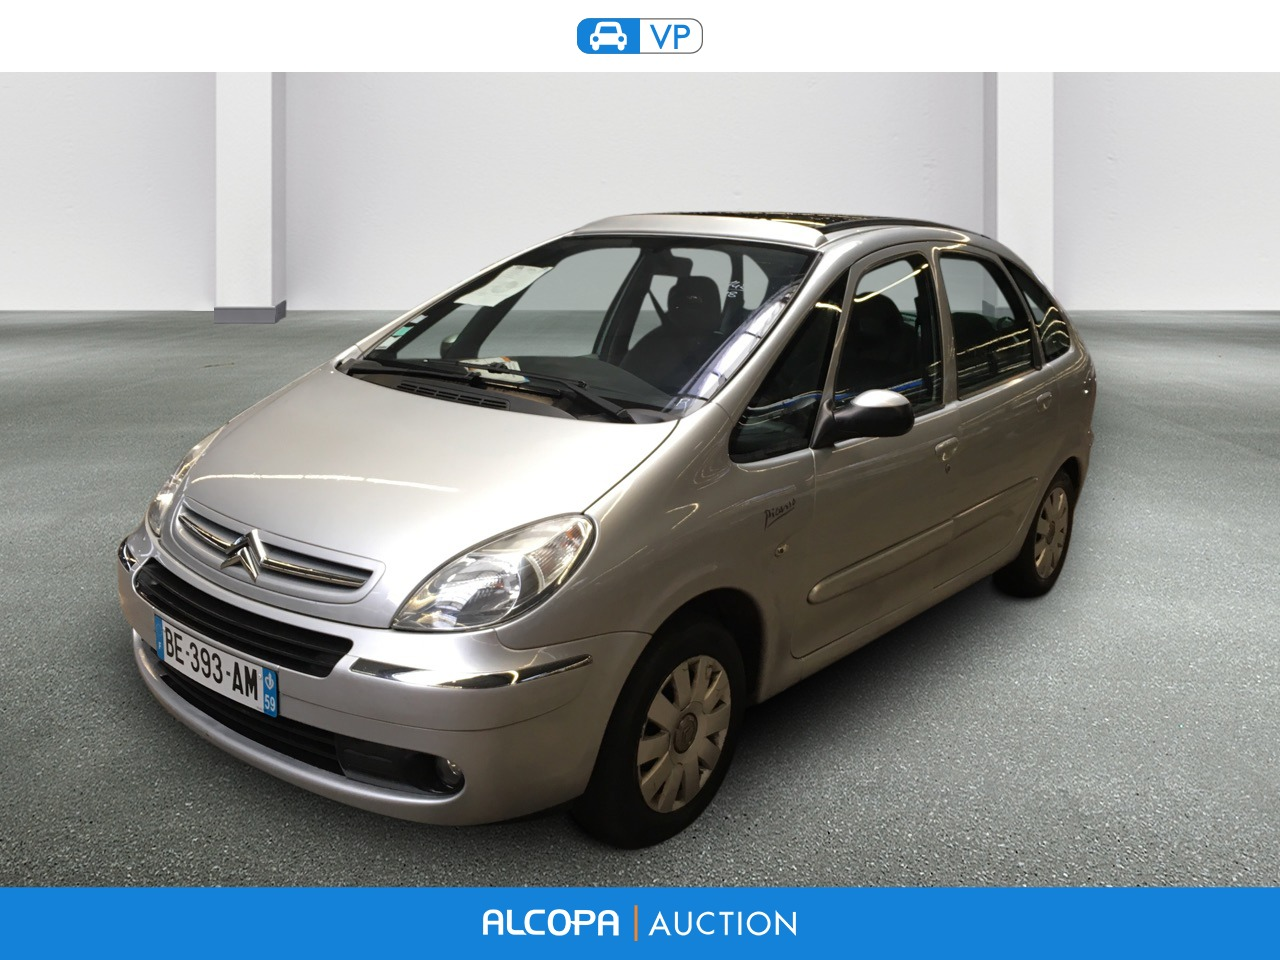 citroen xsara picasso 10 1998 01 2011 xsara picasso 1 6 hdi 110 fap alcopa auction. Black Bedroom Furniture Sets. Home Design Ideas